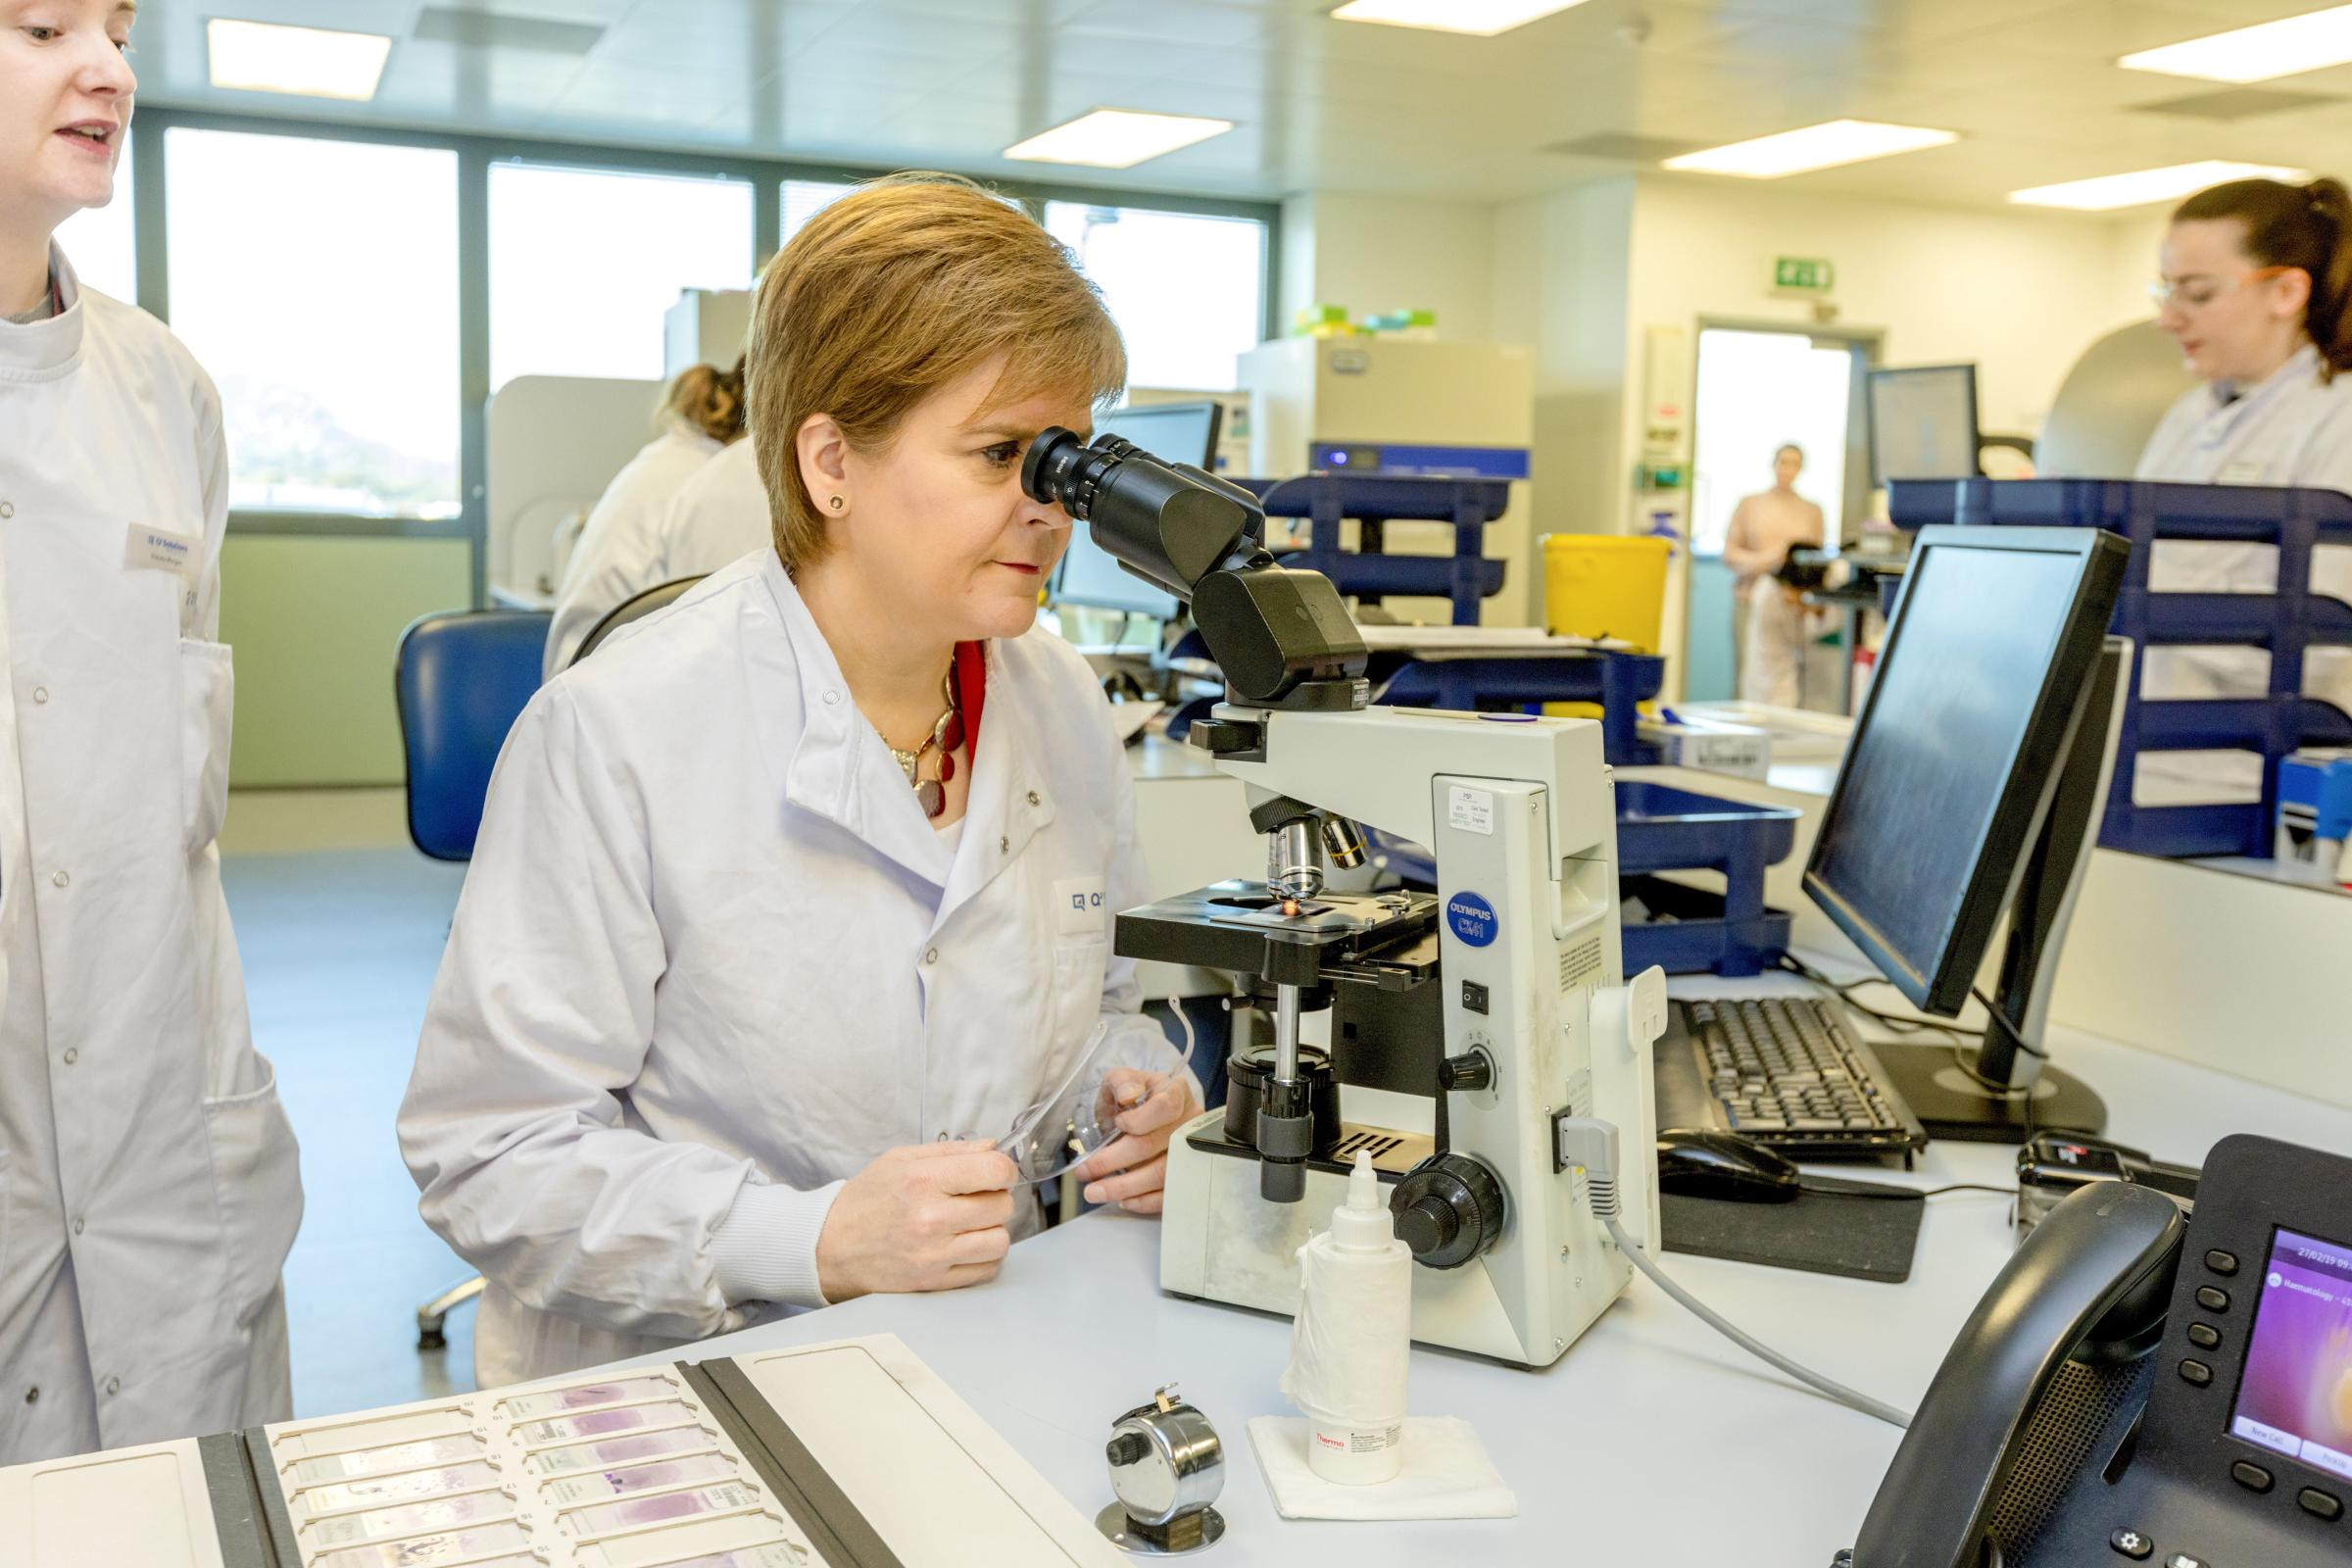 The First Minister visited the Scottish life sciences employer in Livingston